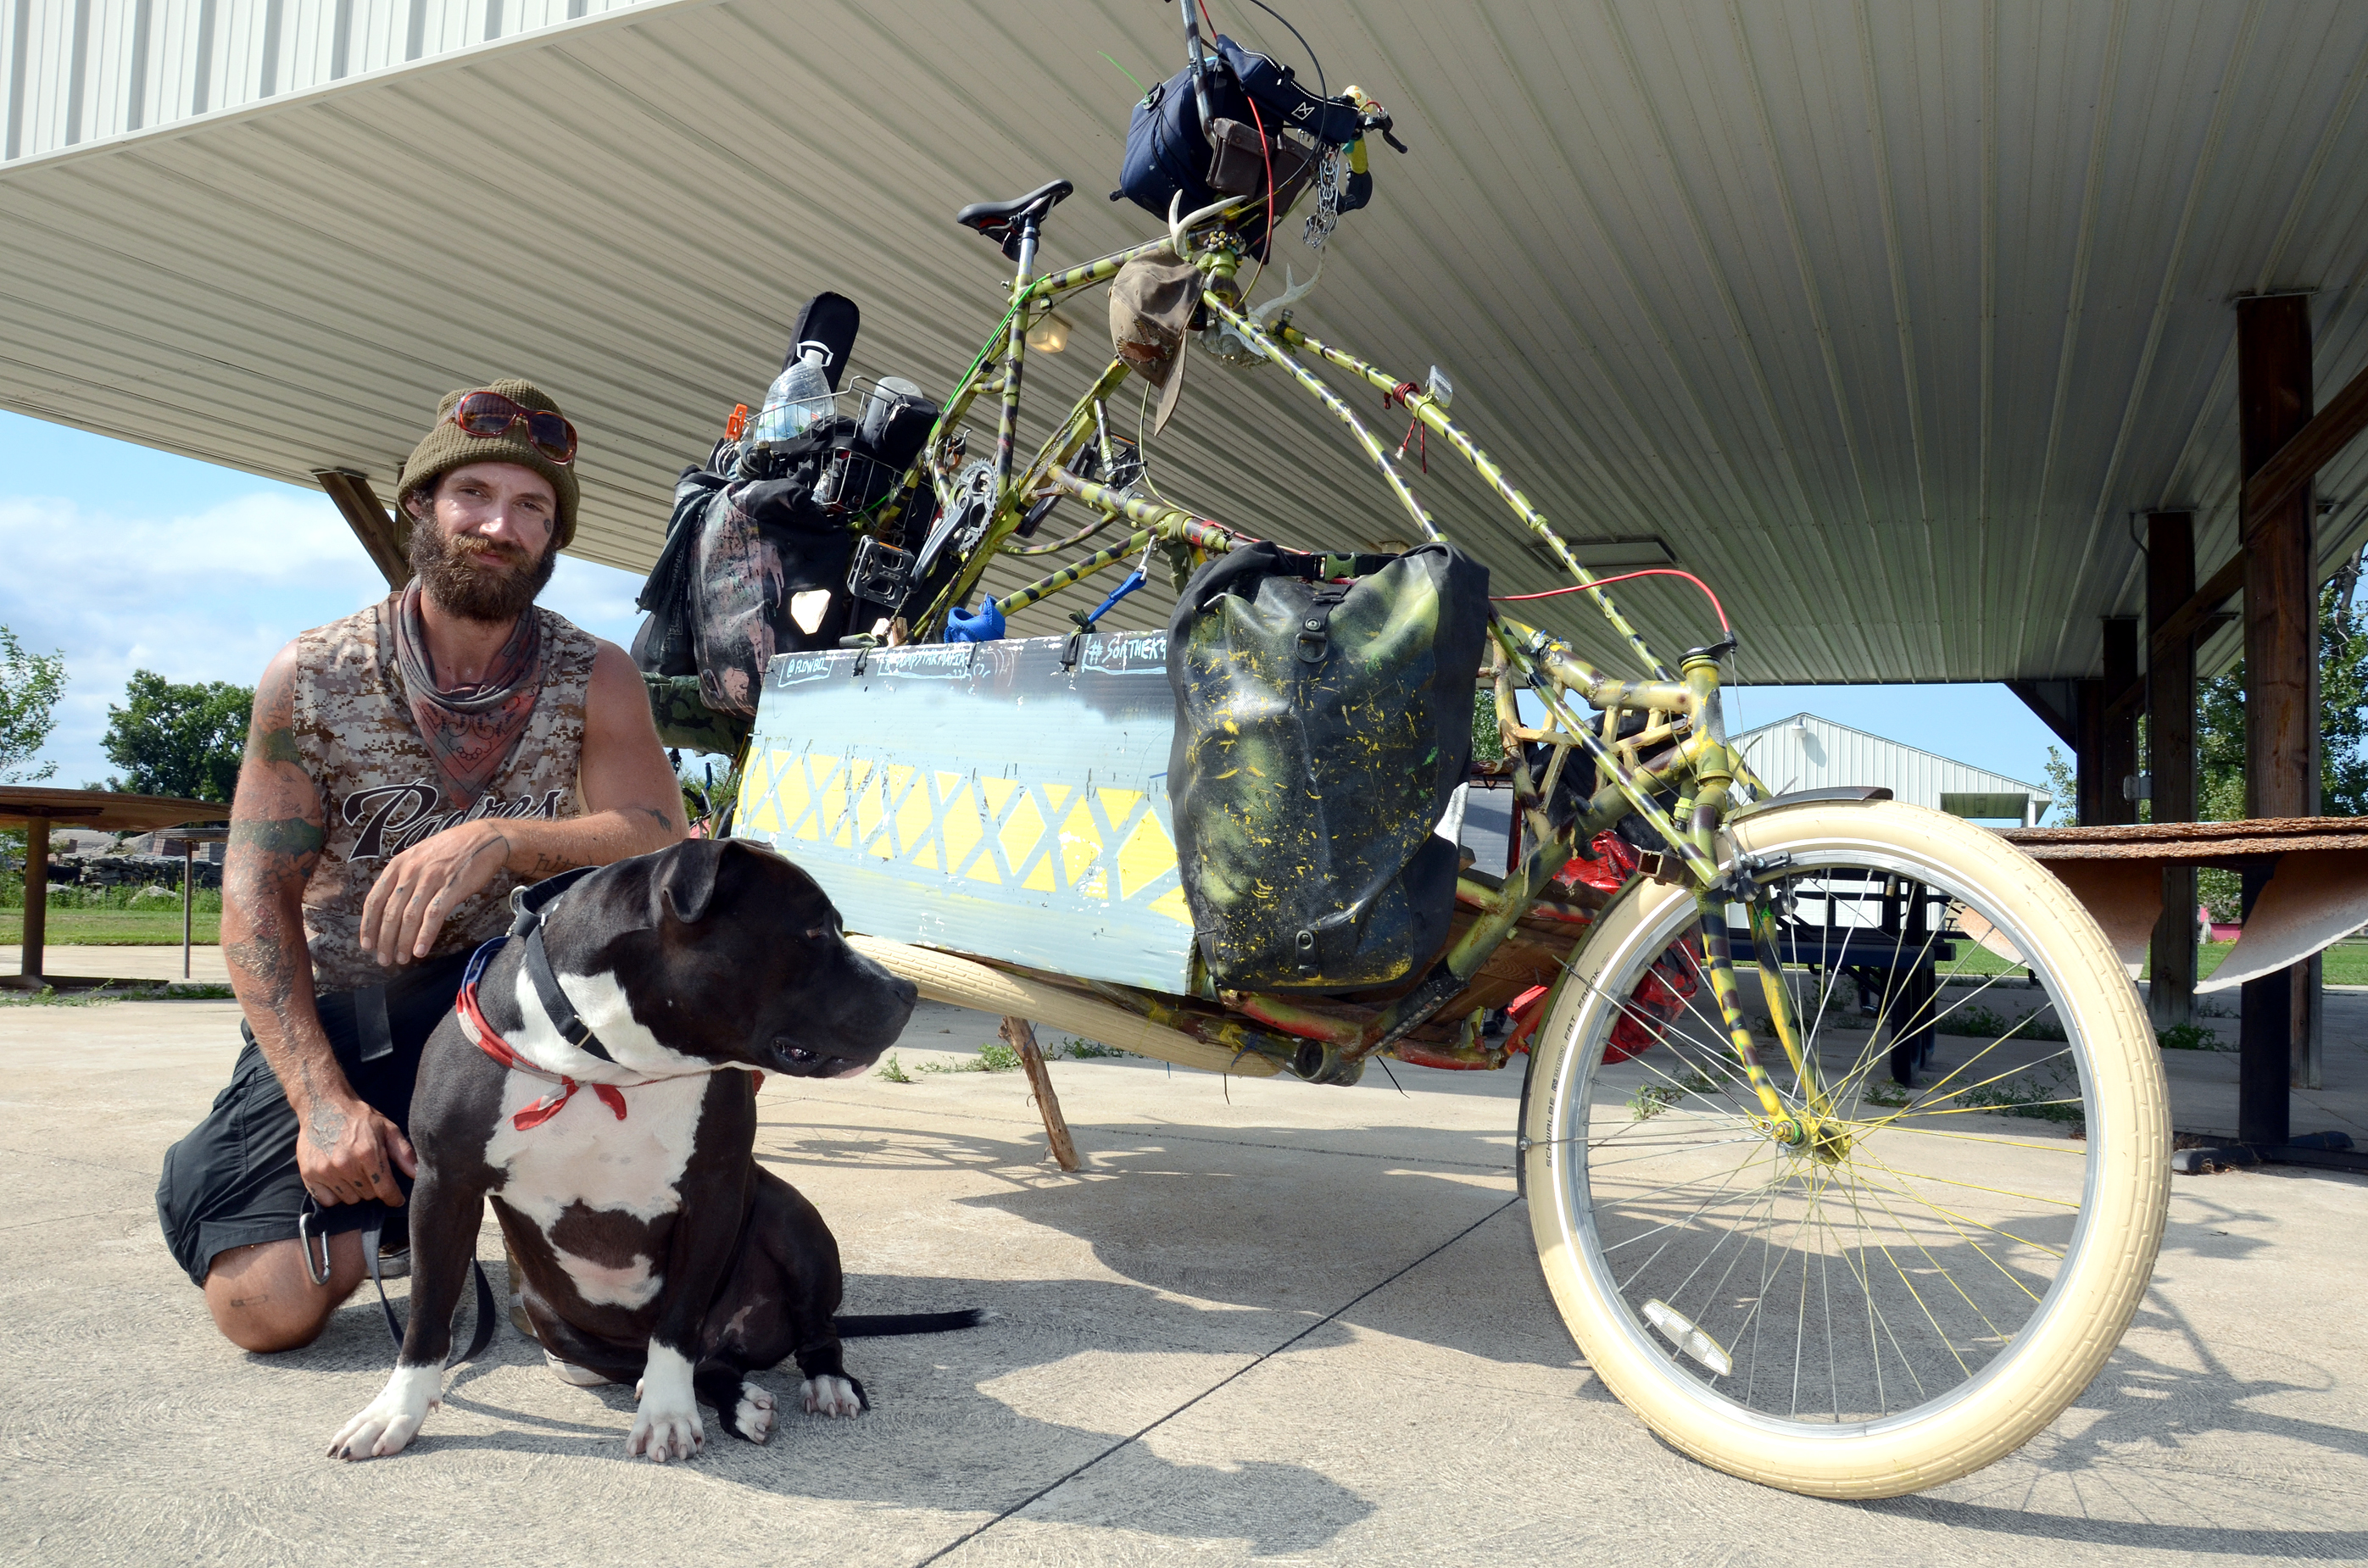 Chase Clements with his dog Sonny. (Press photo by Ken Grosjean)